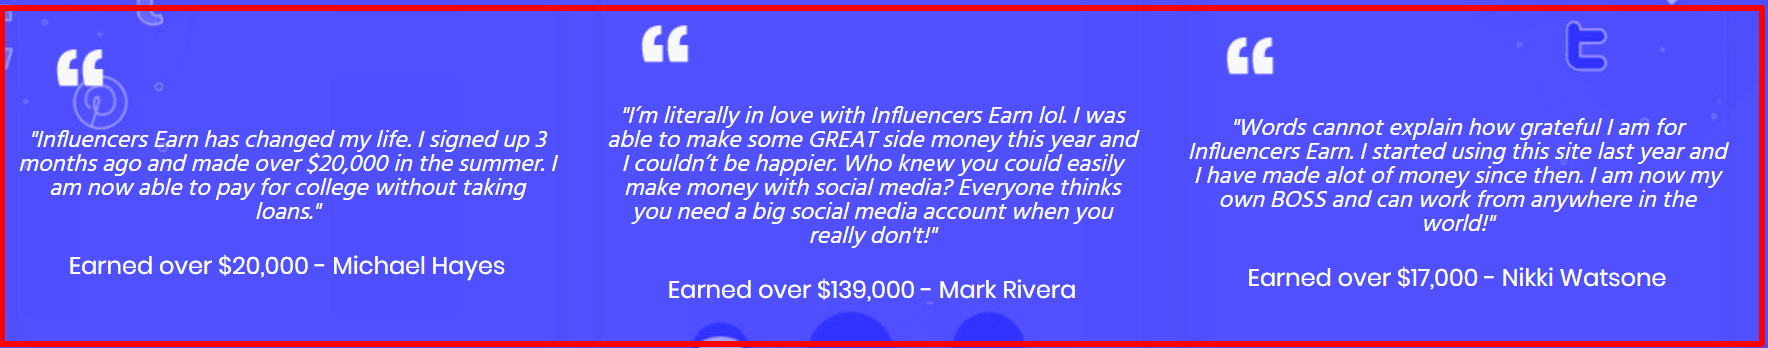 Influencers Earn Review - testimonial on its own site